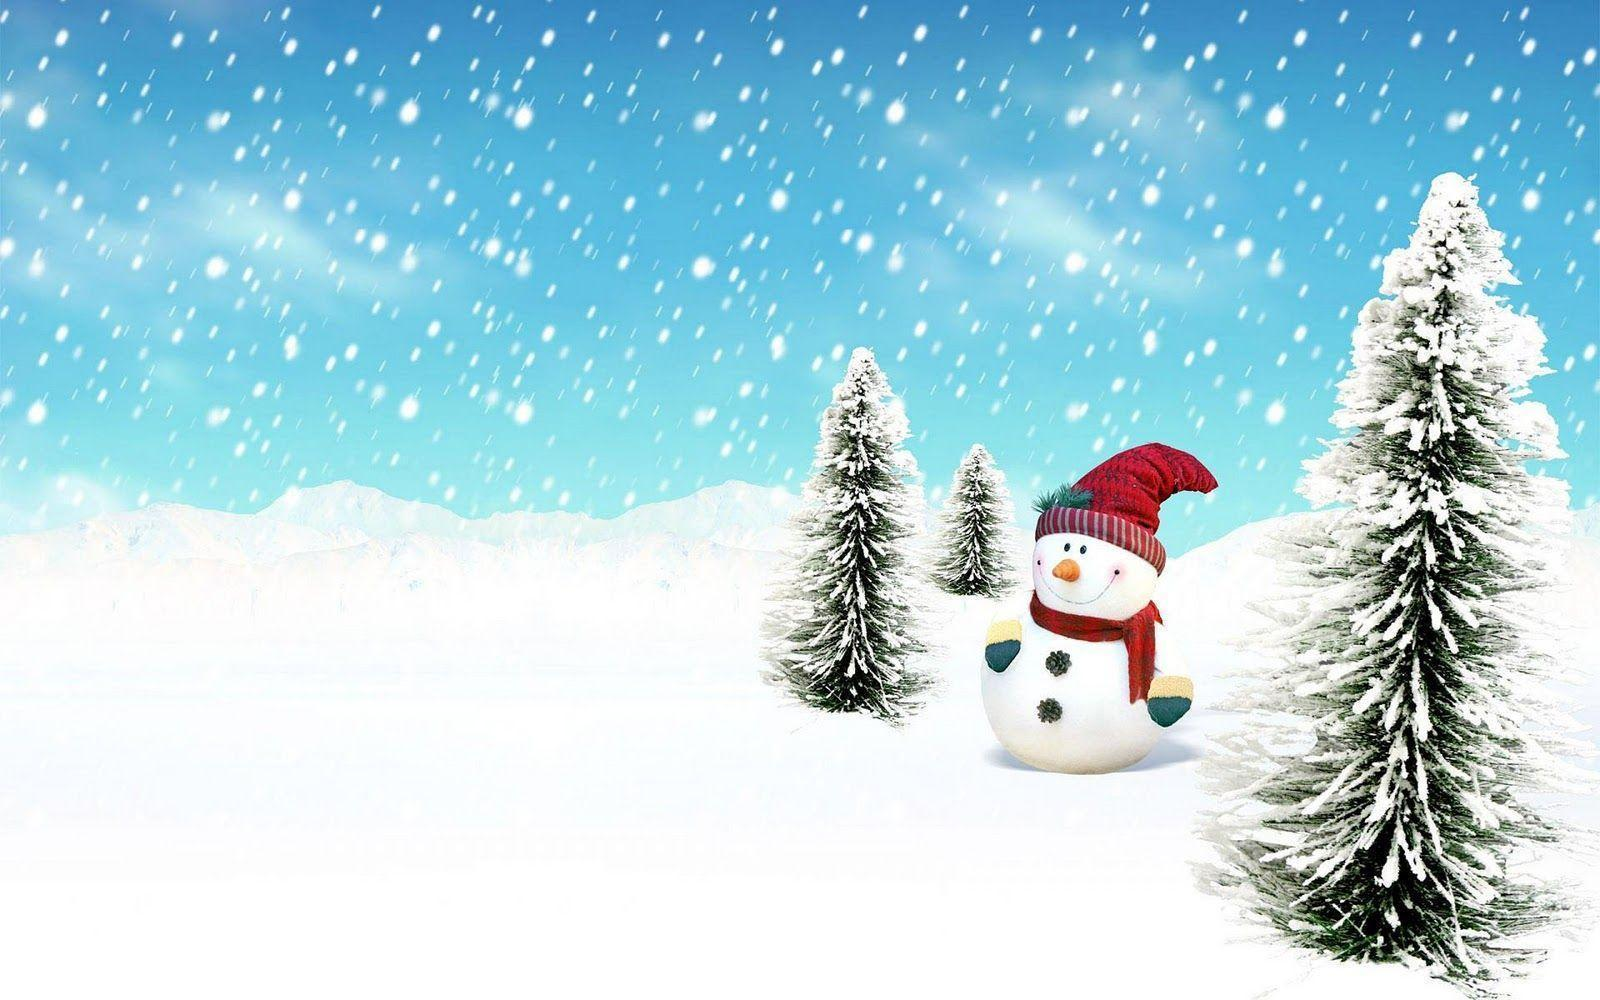 Wallpapers For > Snowman Backgrounds For Desktop